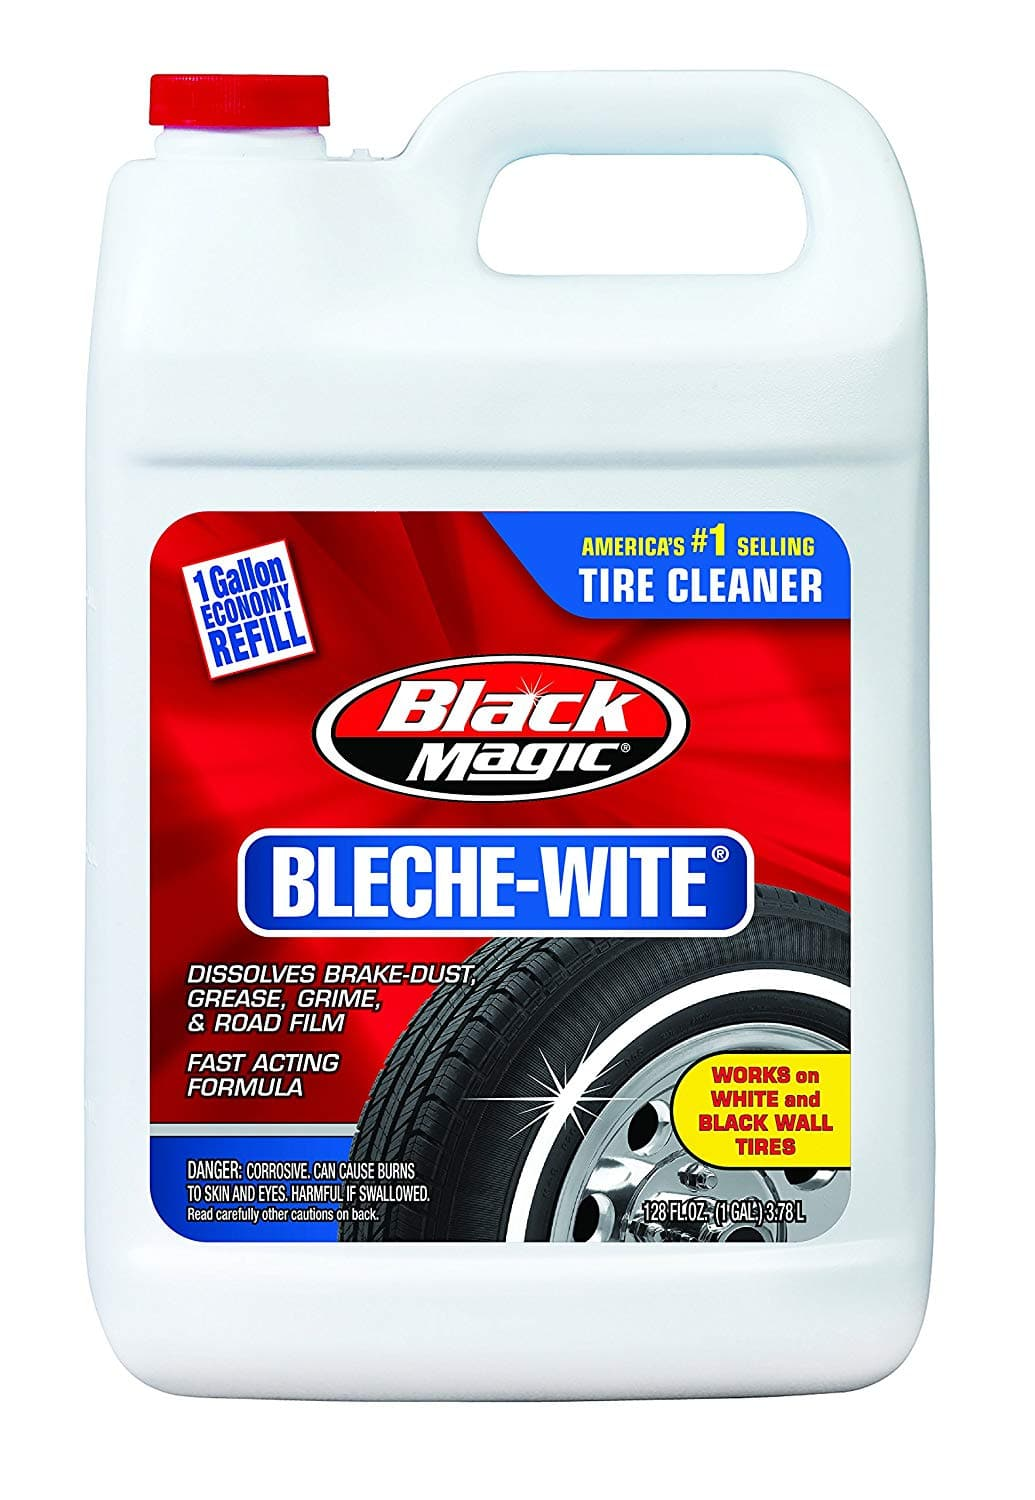 One Gallon Container Black Magic 800002222 Bleche-Wite Tire Cleaner - $7.23 With Subscribe & Save + Free Shipping - Amazon